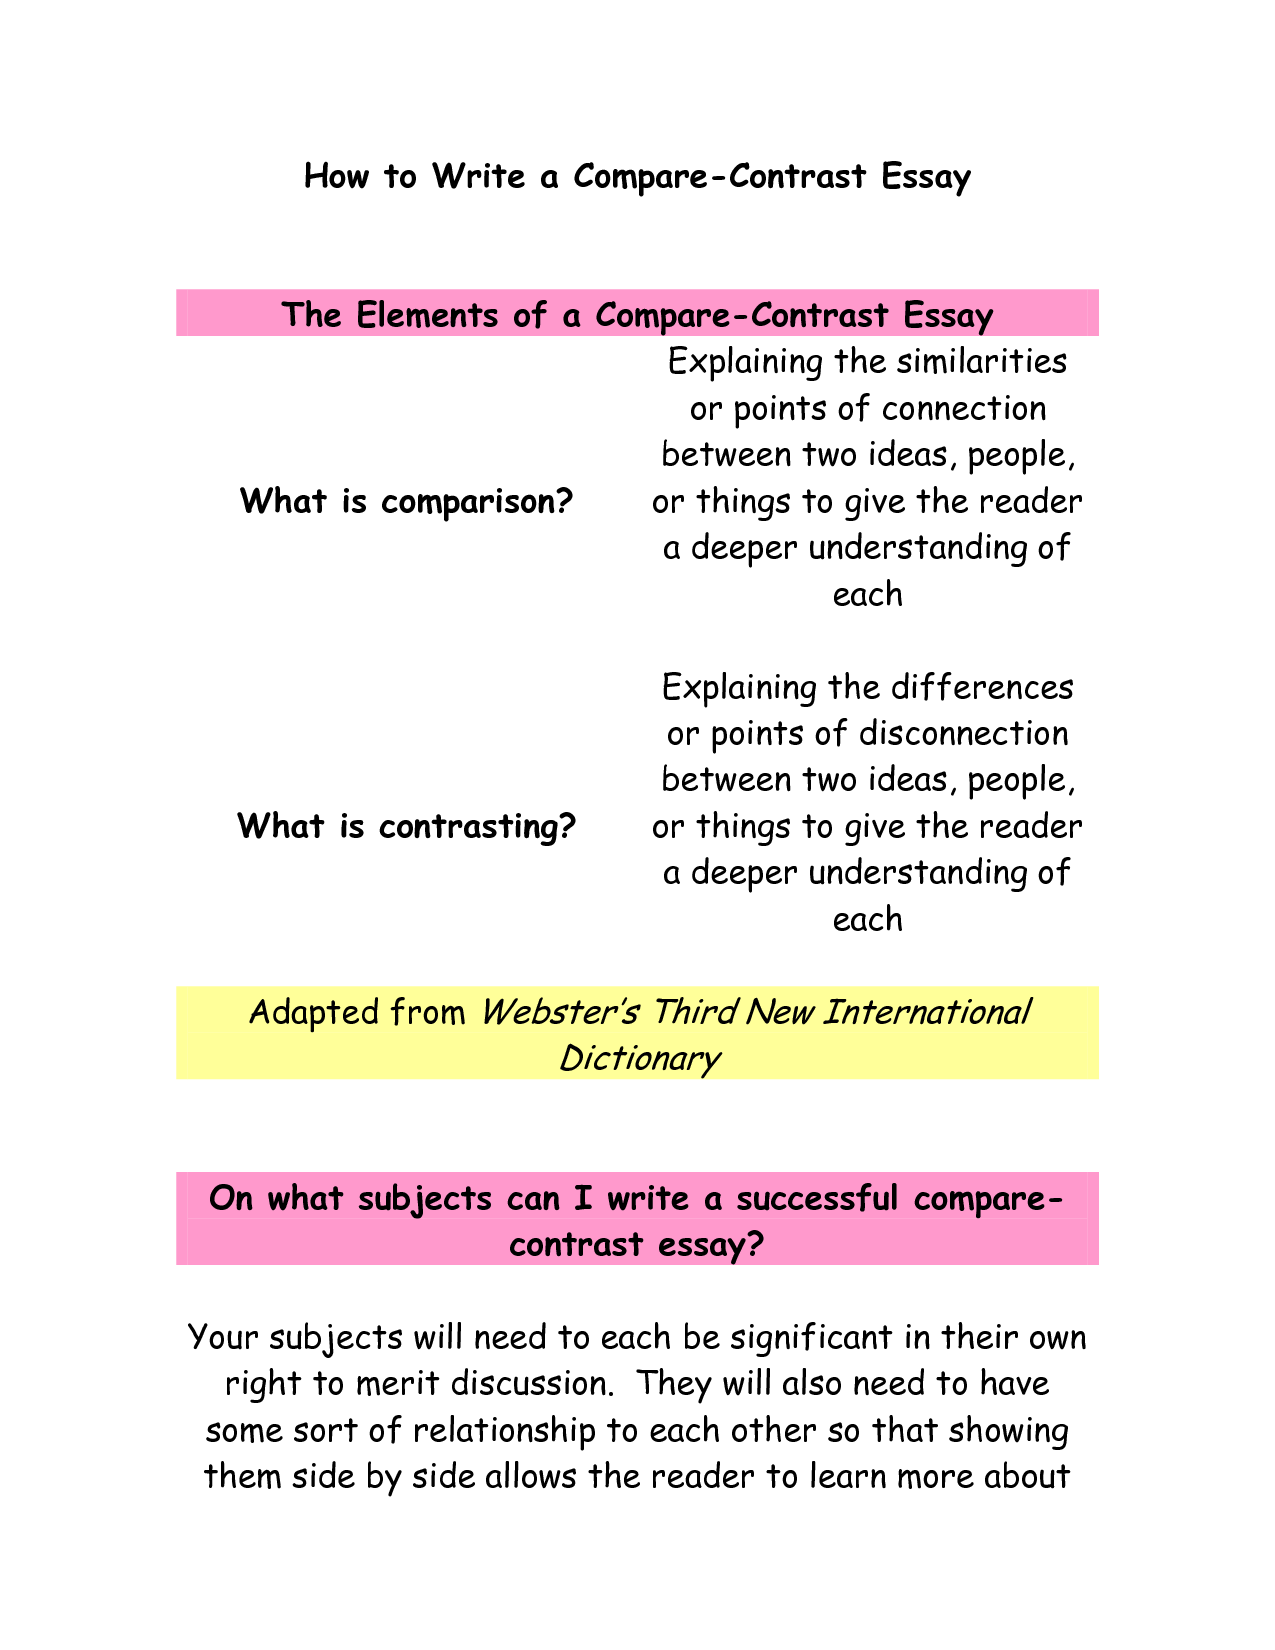 how to write compare and contrast essay job